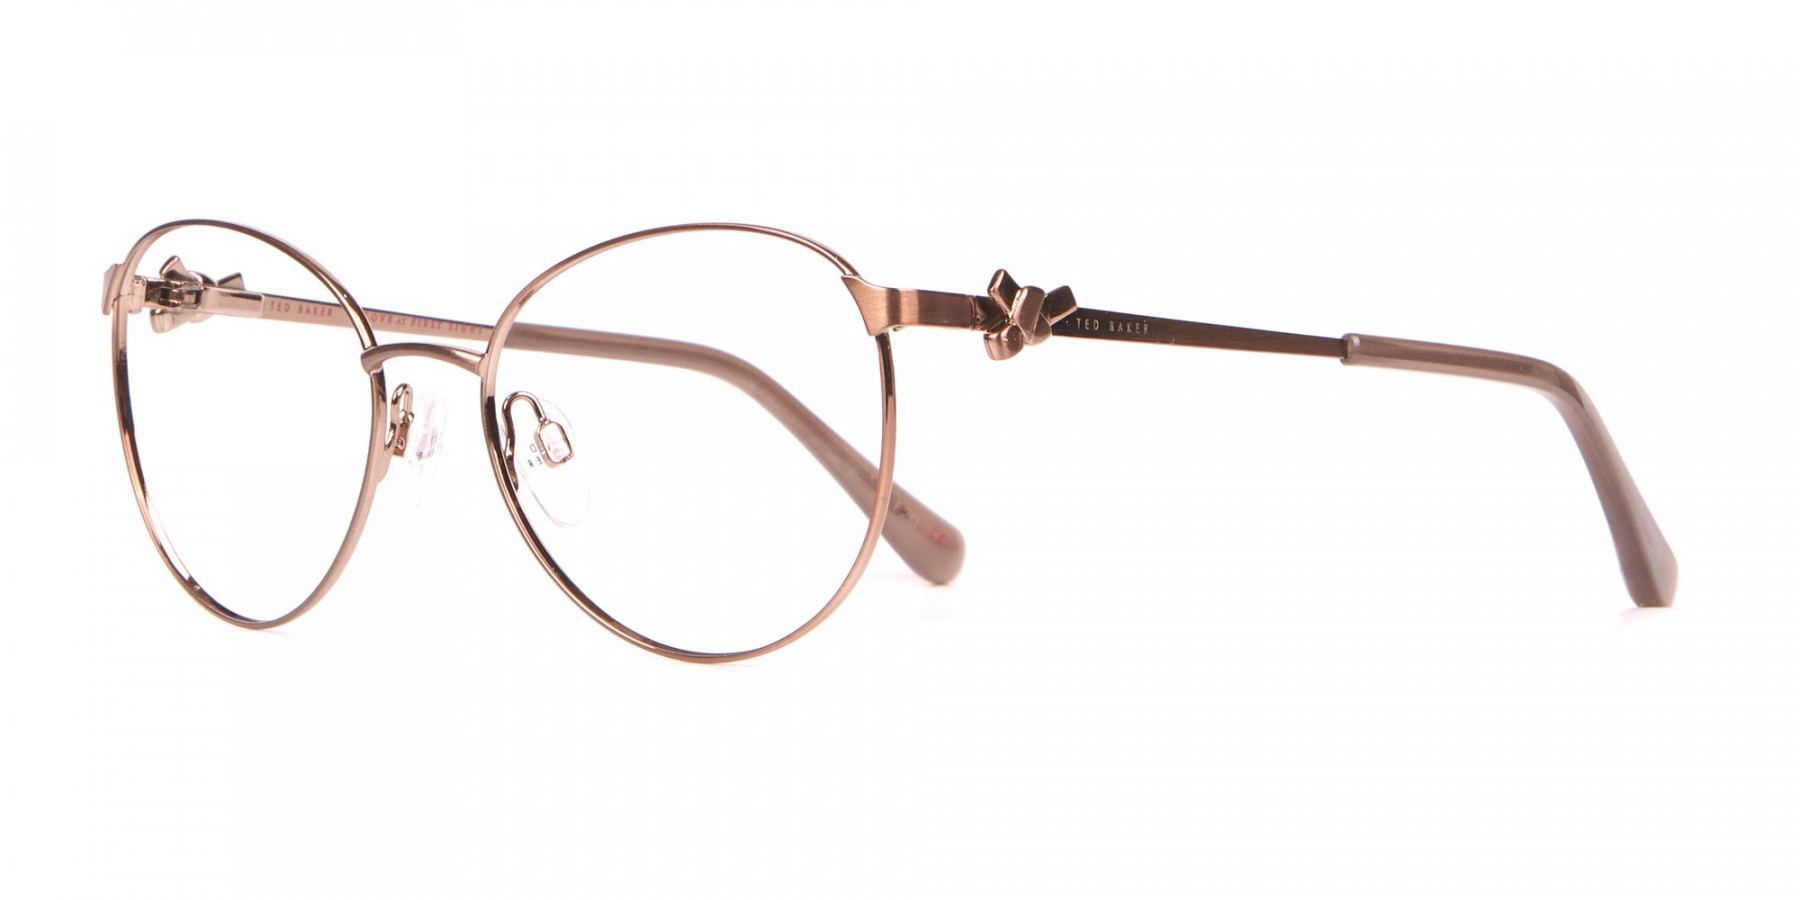 Ted Baker TB2243 Elvie Full Rim Round Metal Glasses Women-1